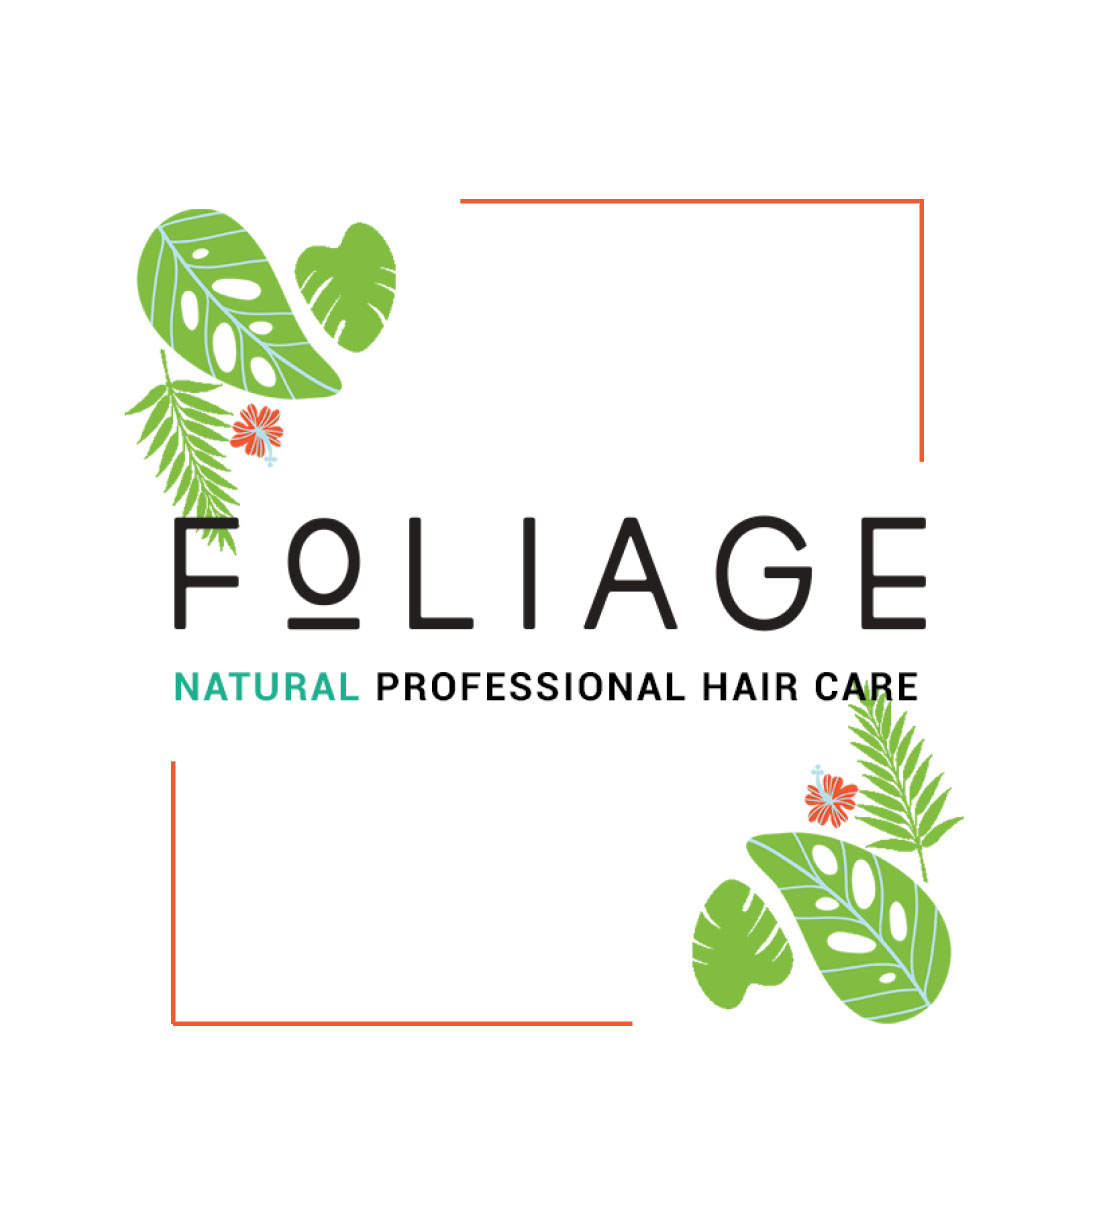 DAVID'S SALON LAUNCHES FOLIAGE PROFESSIONAL HAIR CARE